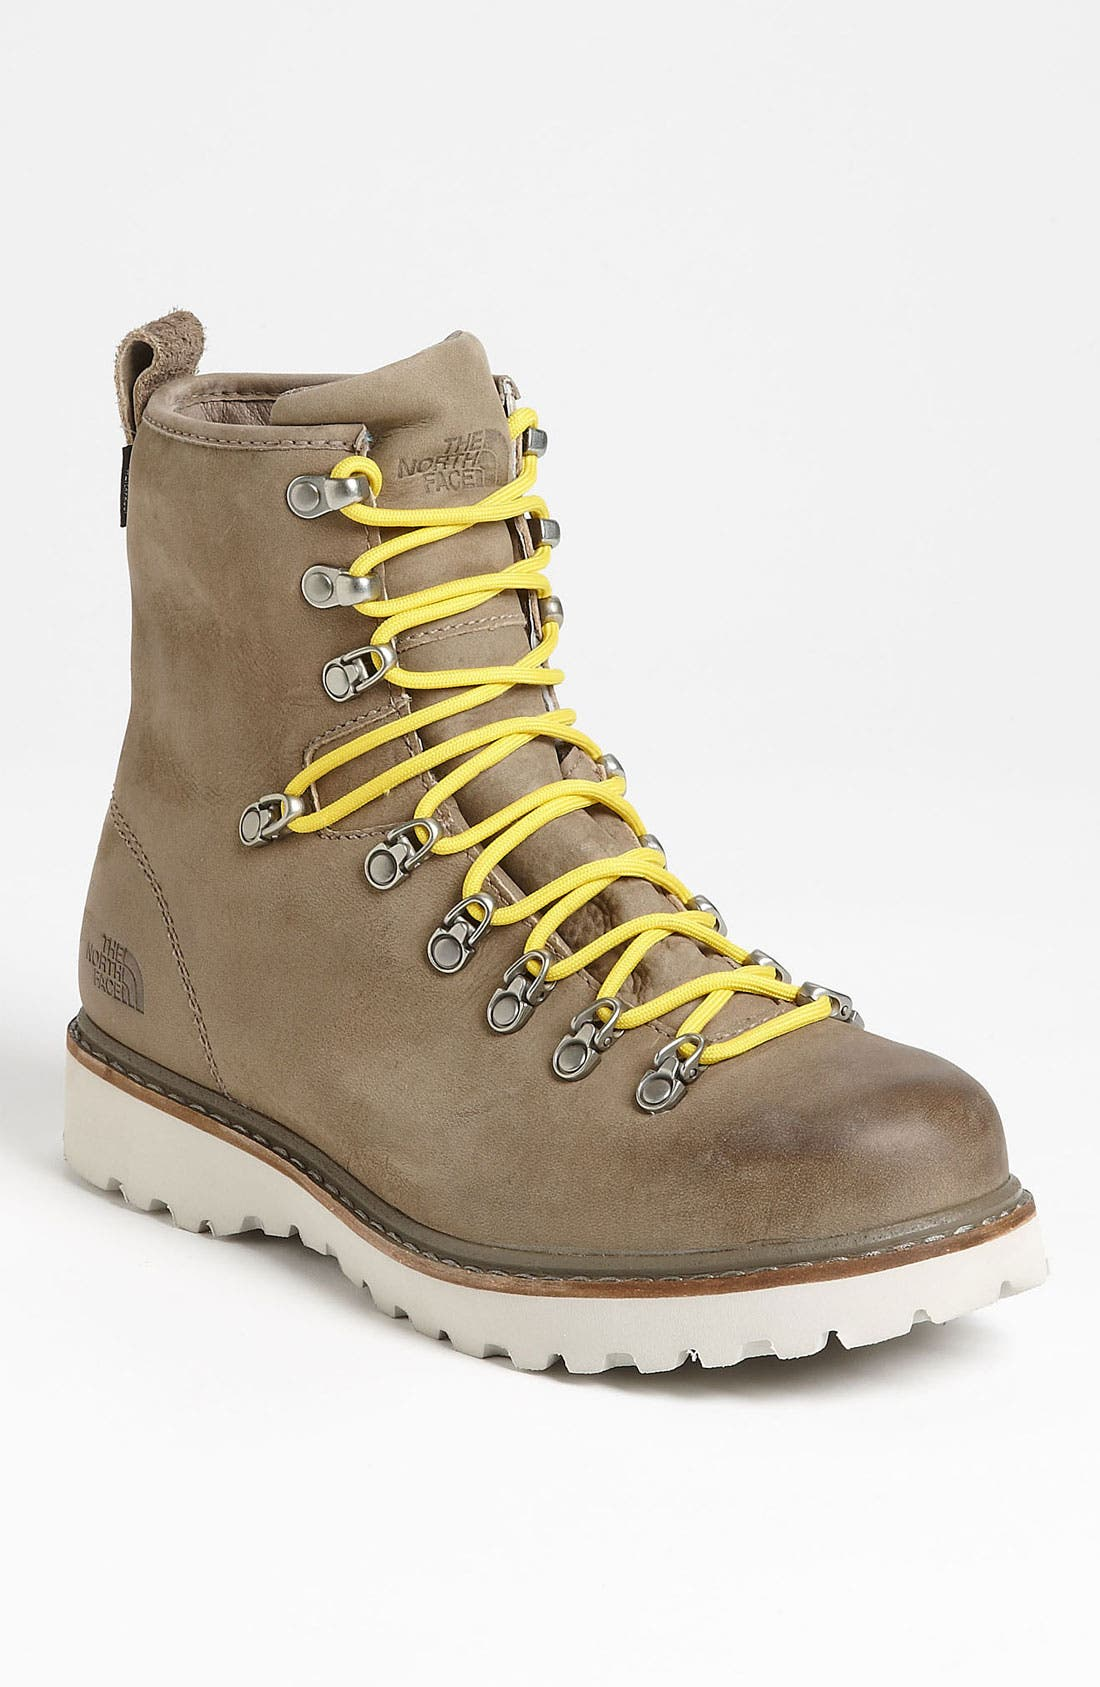 Alternate Image 1 Selected - The North Face 'Ballard' Boot